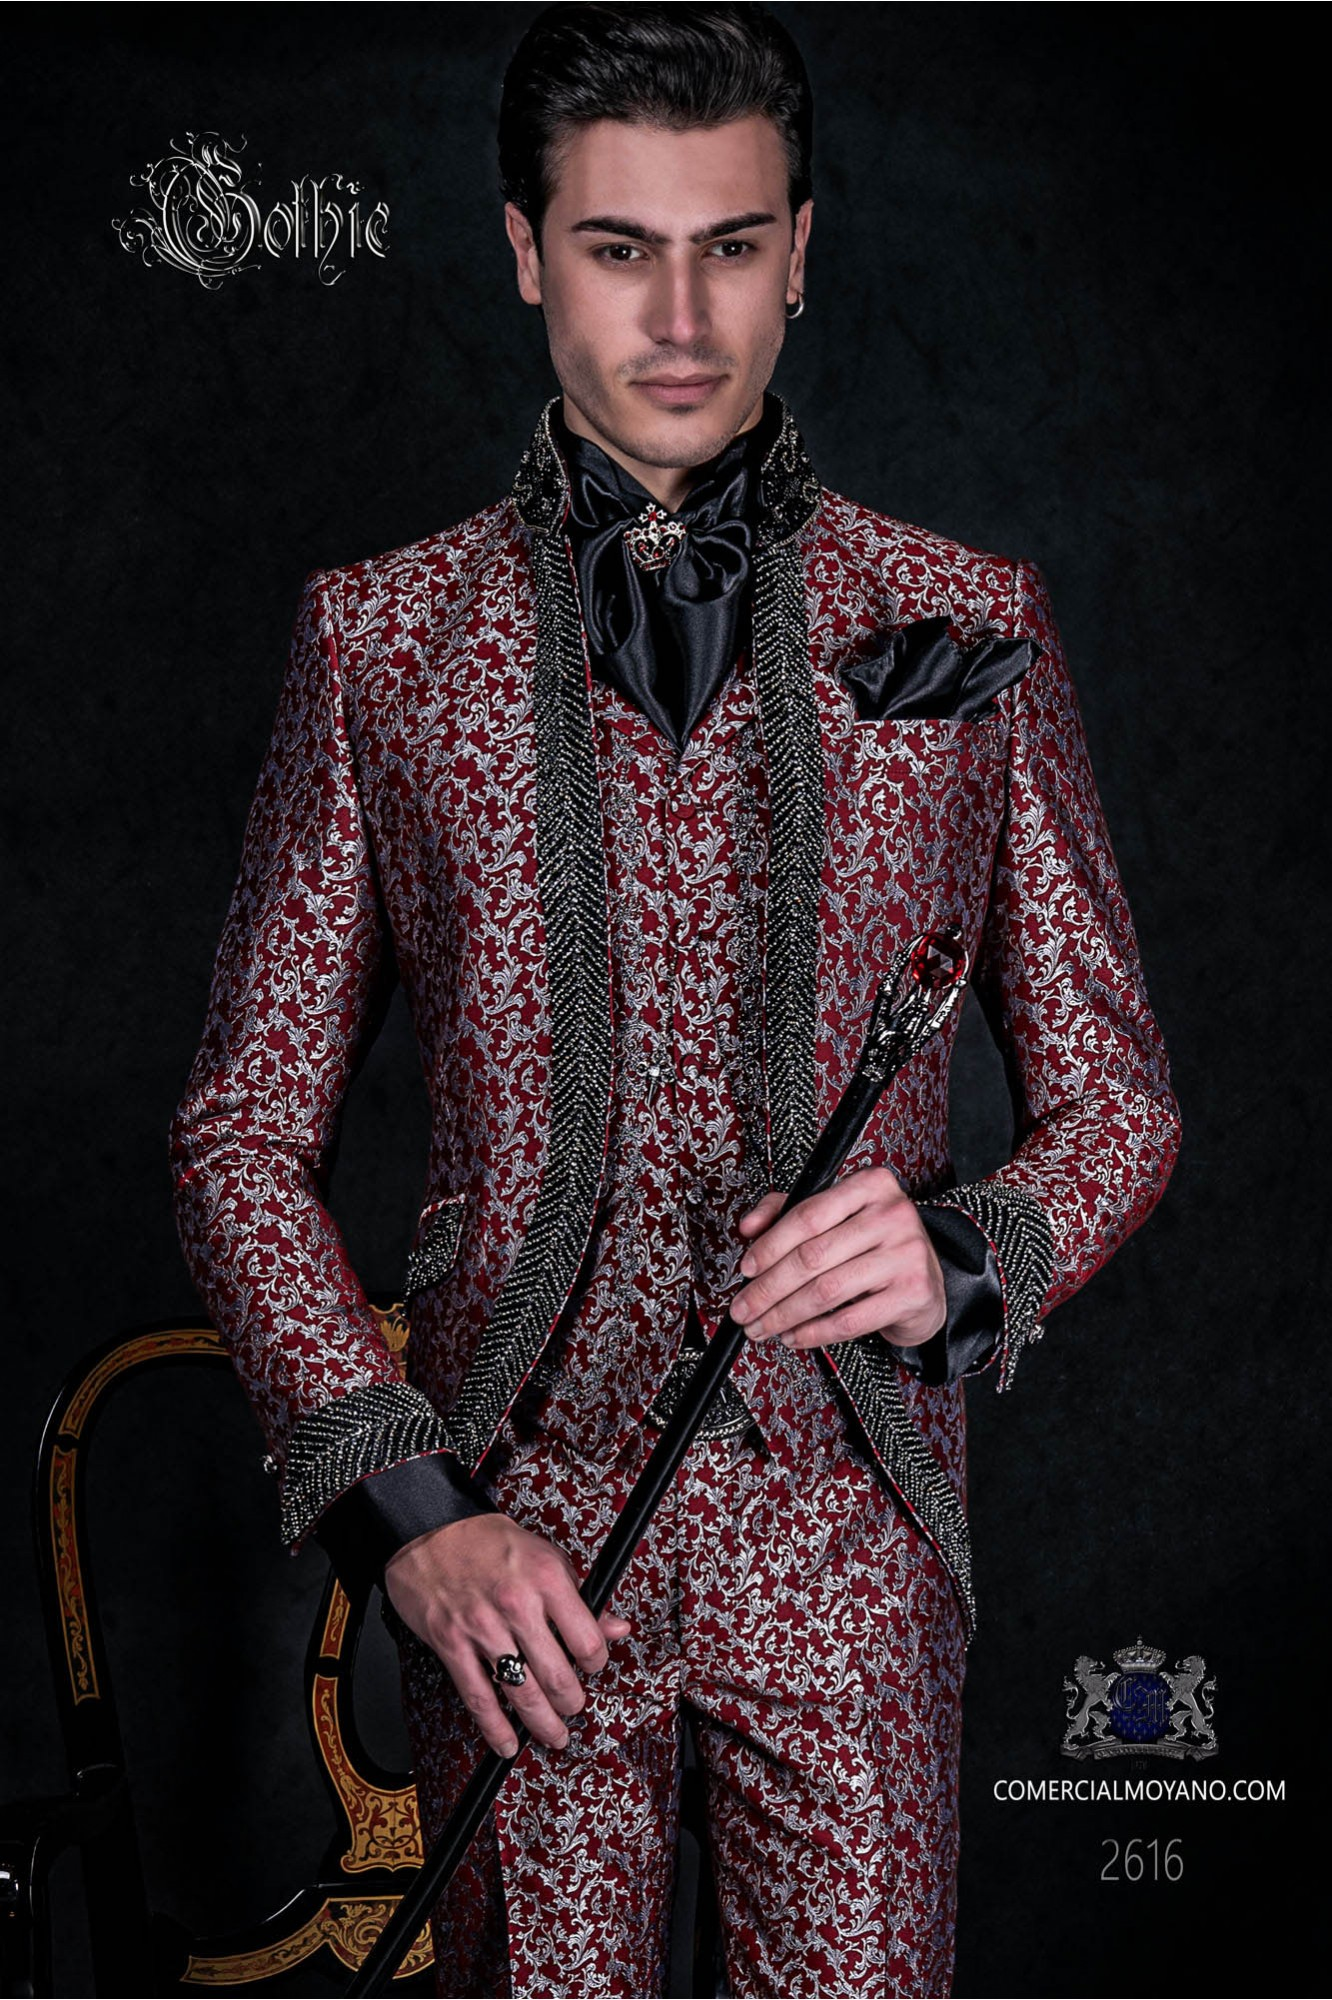 Vintage Men wedding frock coat in red and silver brocade fabric with Mao collar with black rhinestones